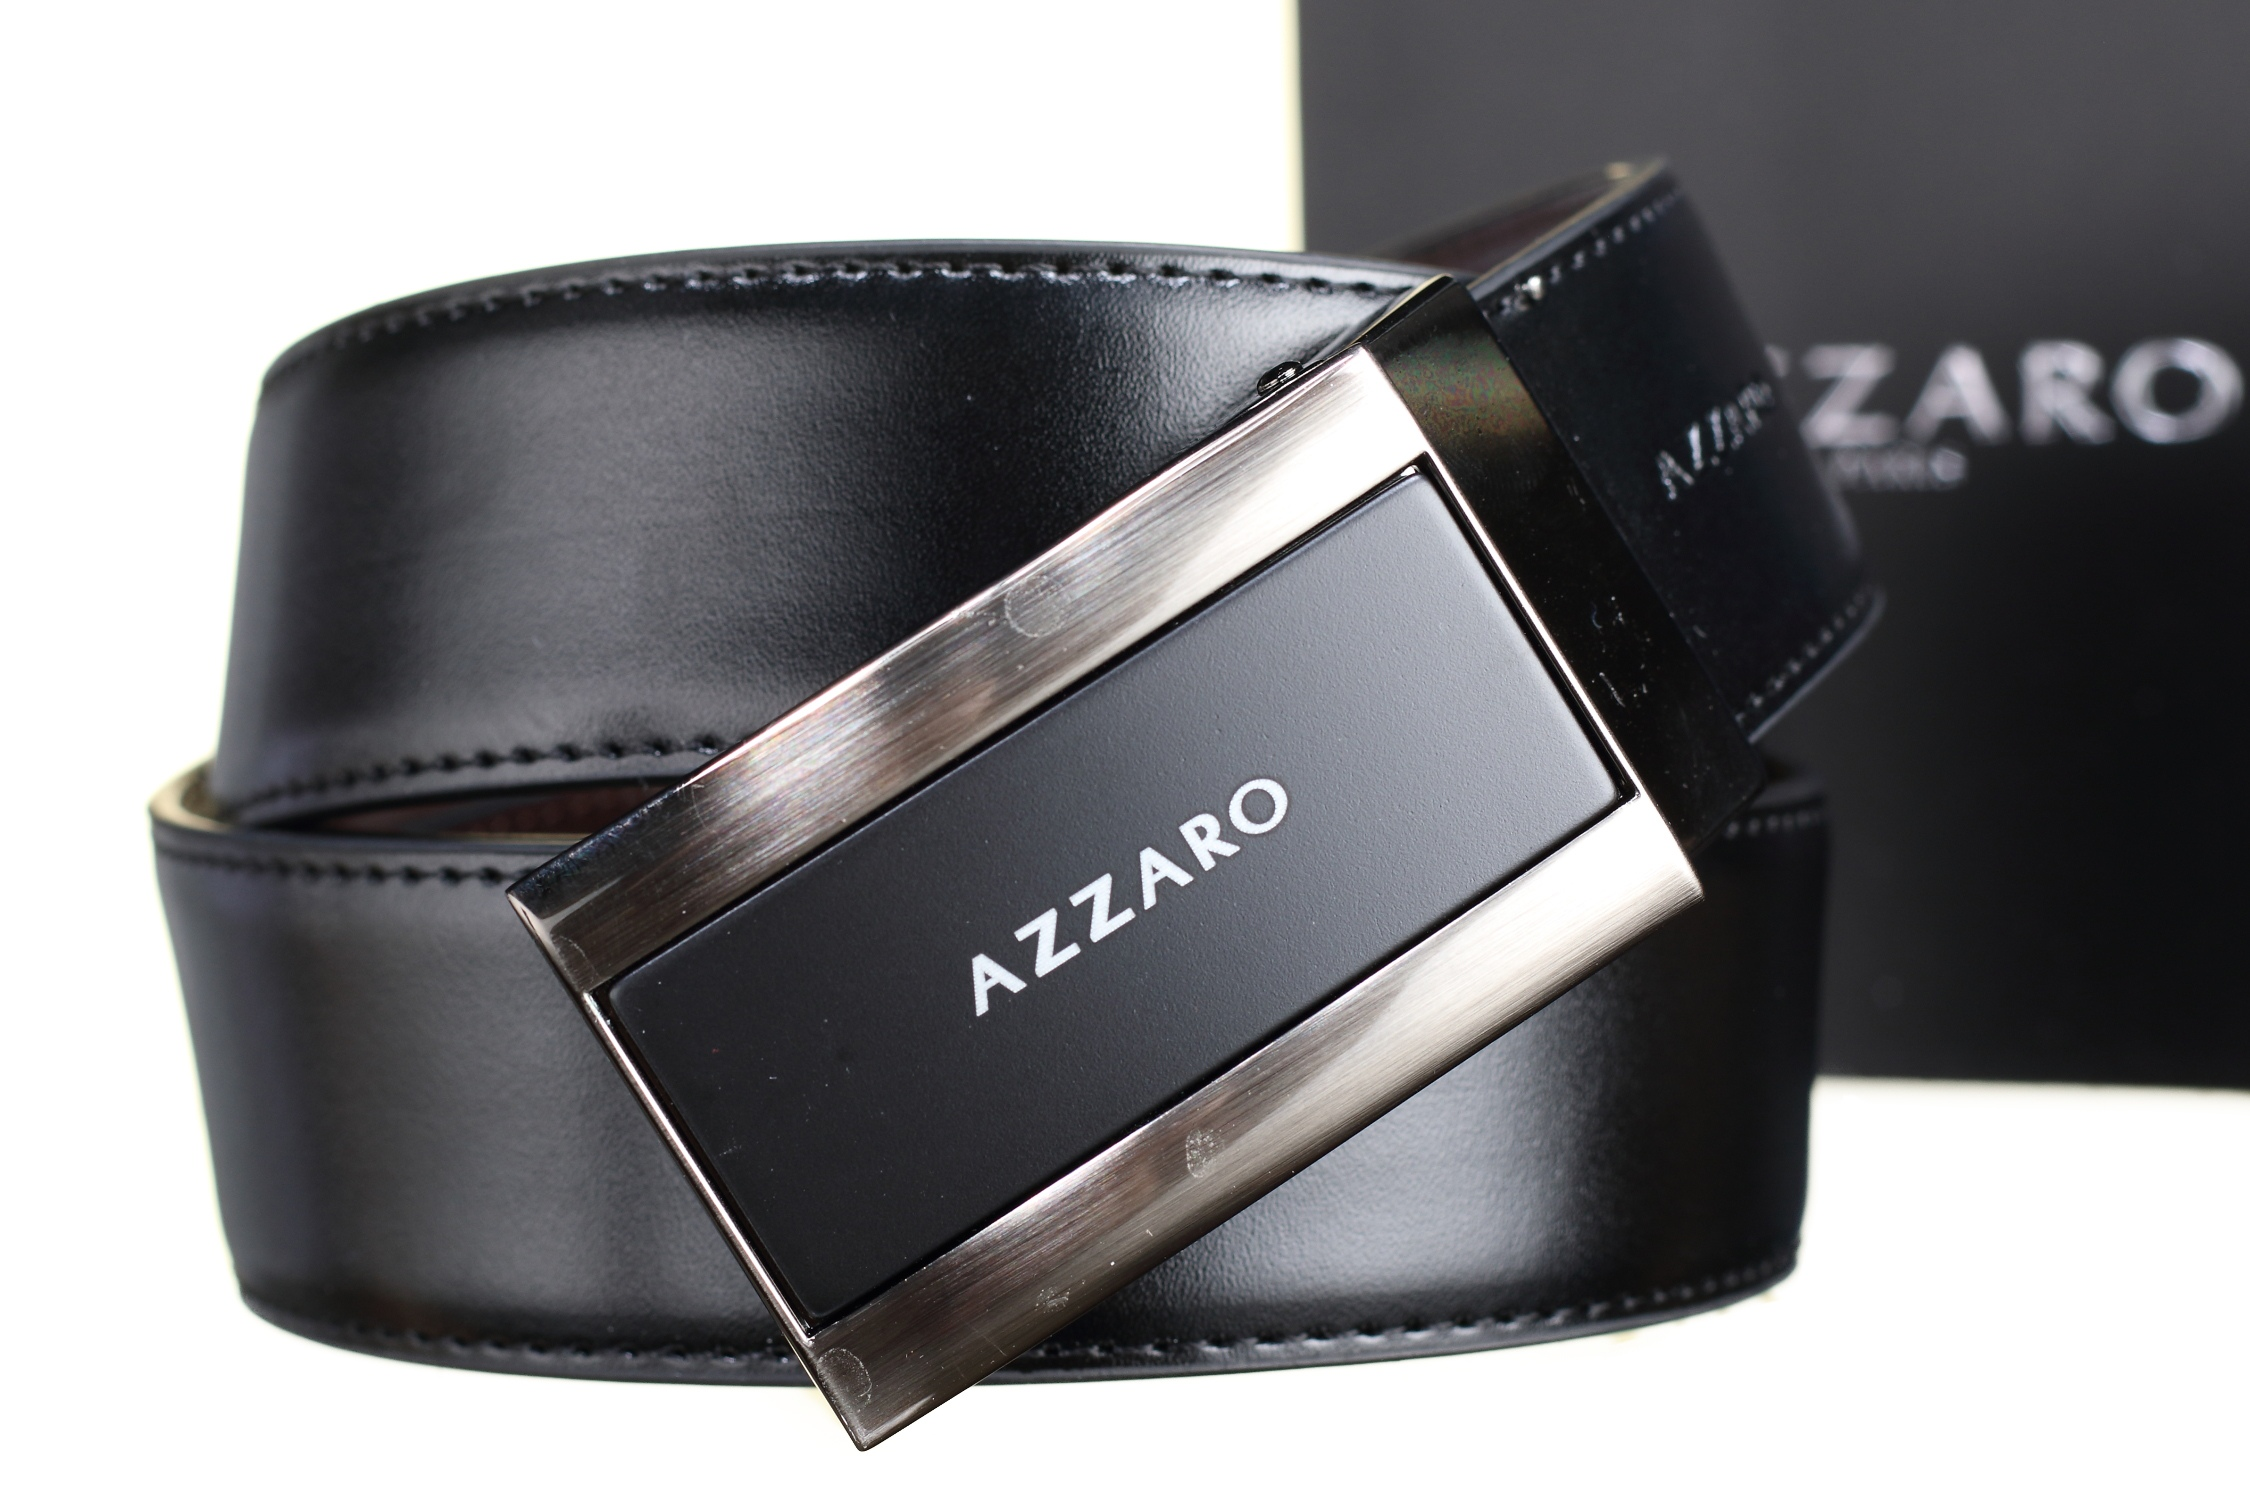 http://www.leadermode.com/113215/azzaro-large-91206-reversible-noir-marron.jpg